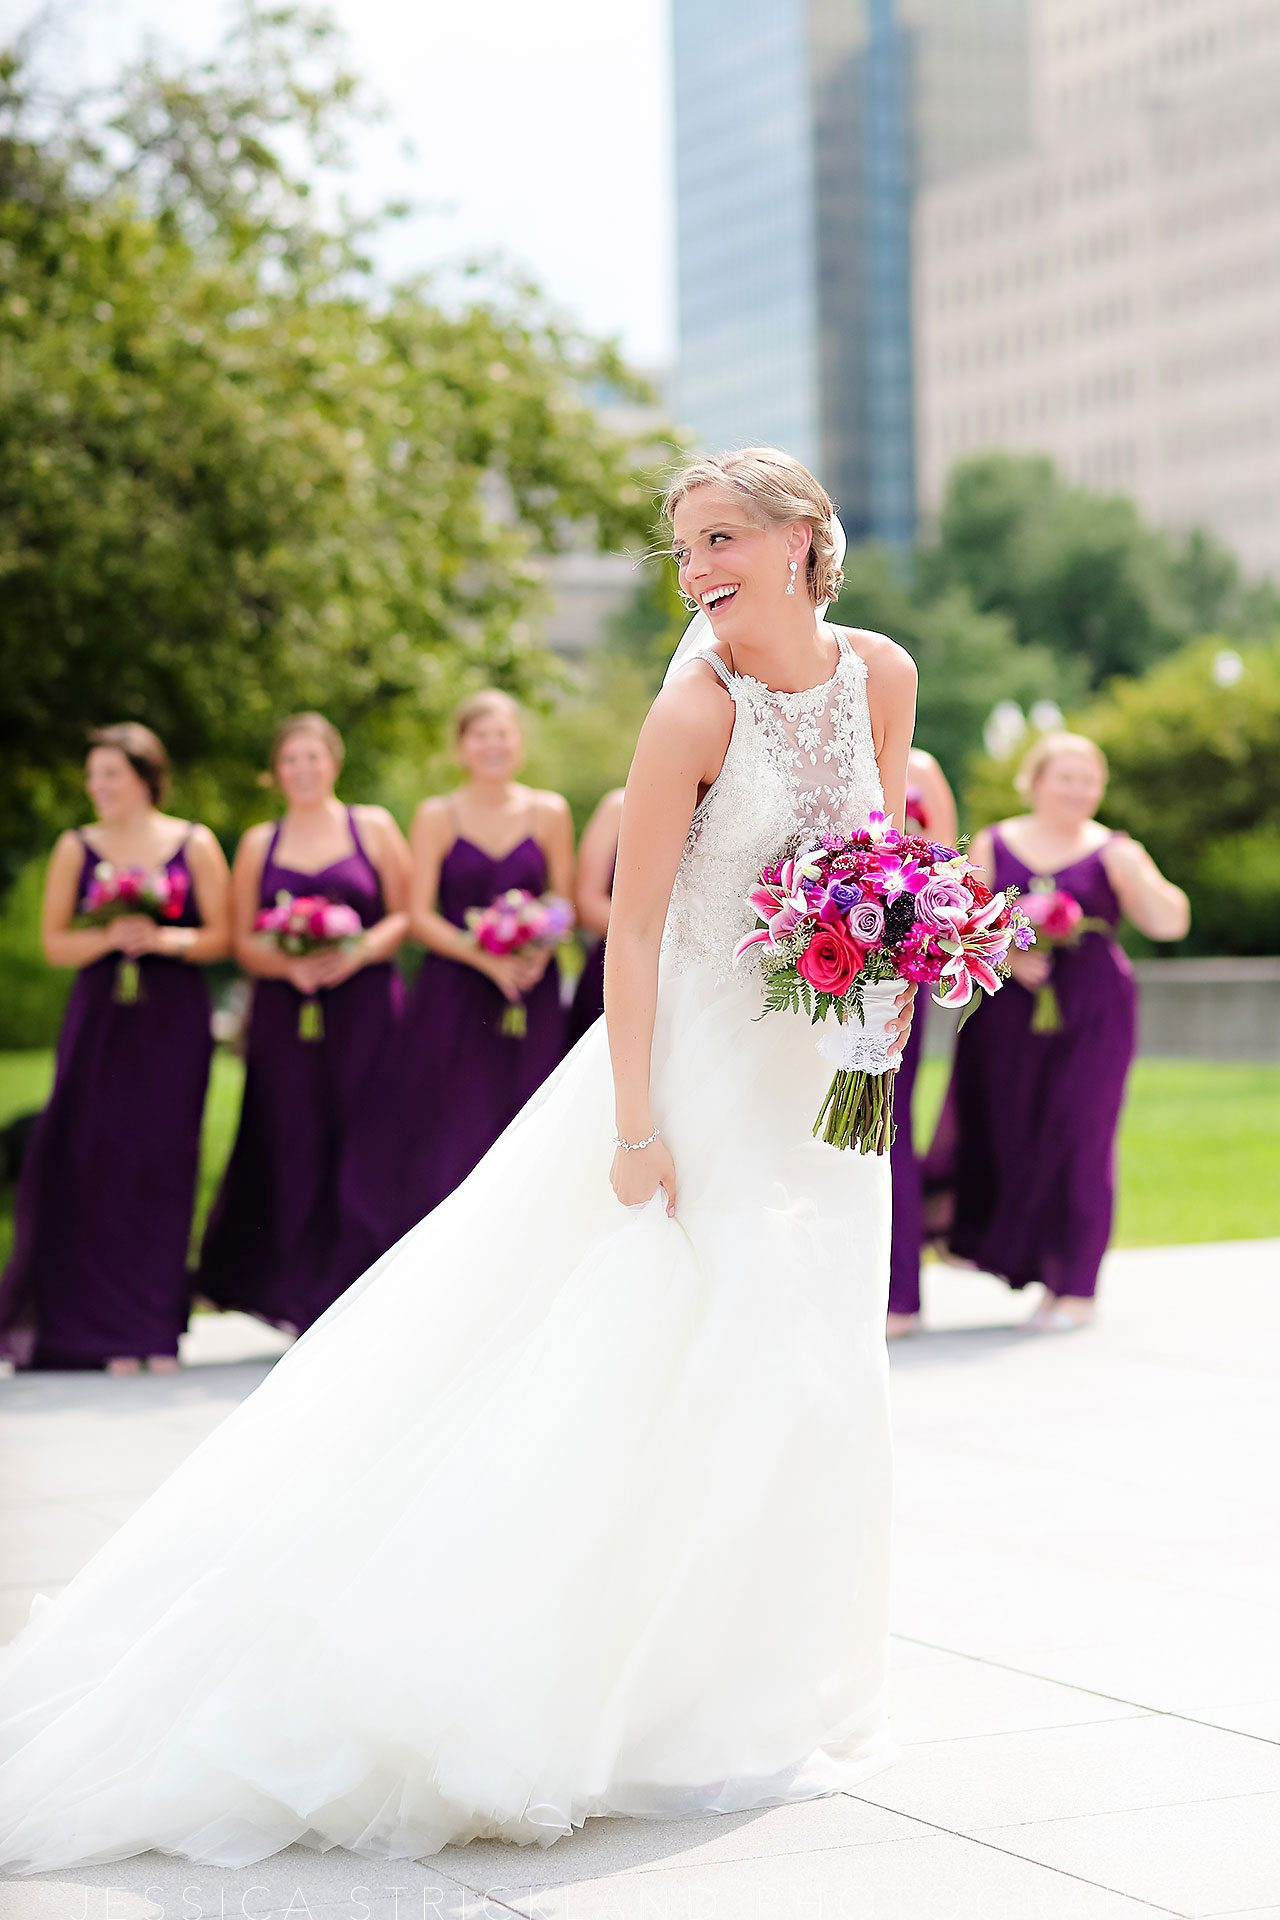 Serra Alex Regions Tower Indianapolis Wedding 099 watermarked